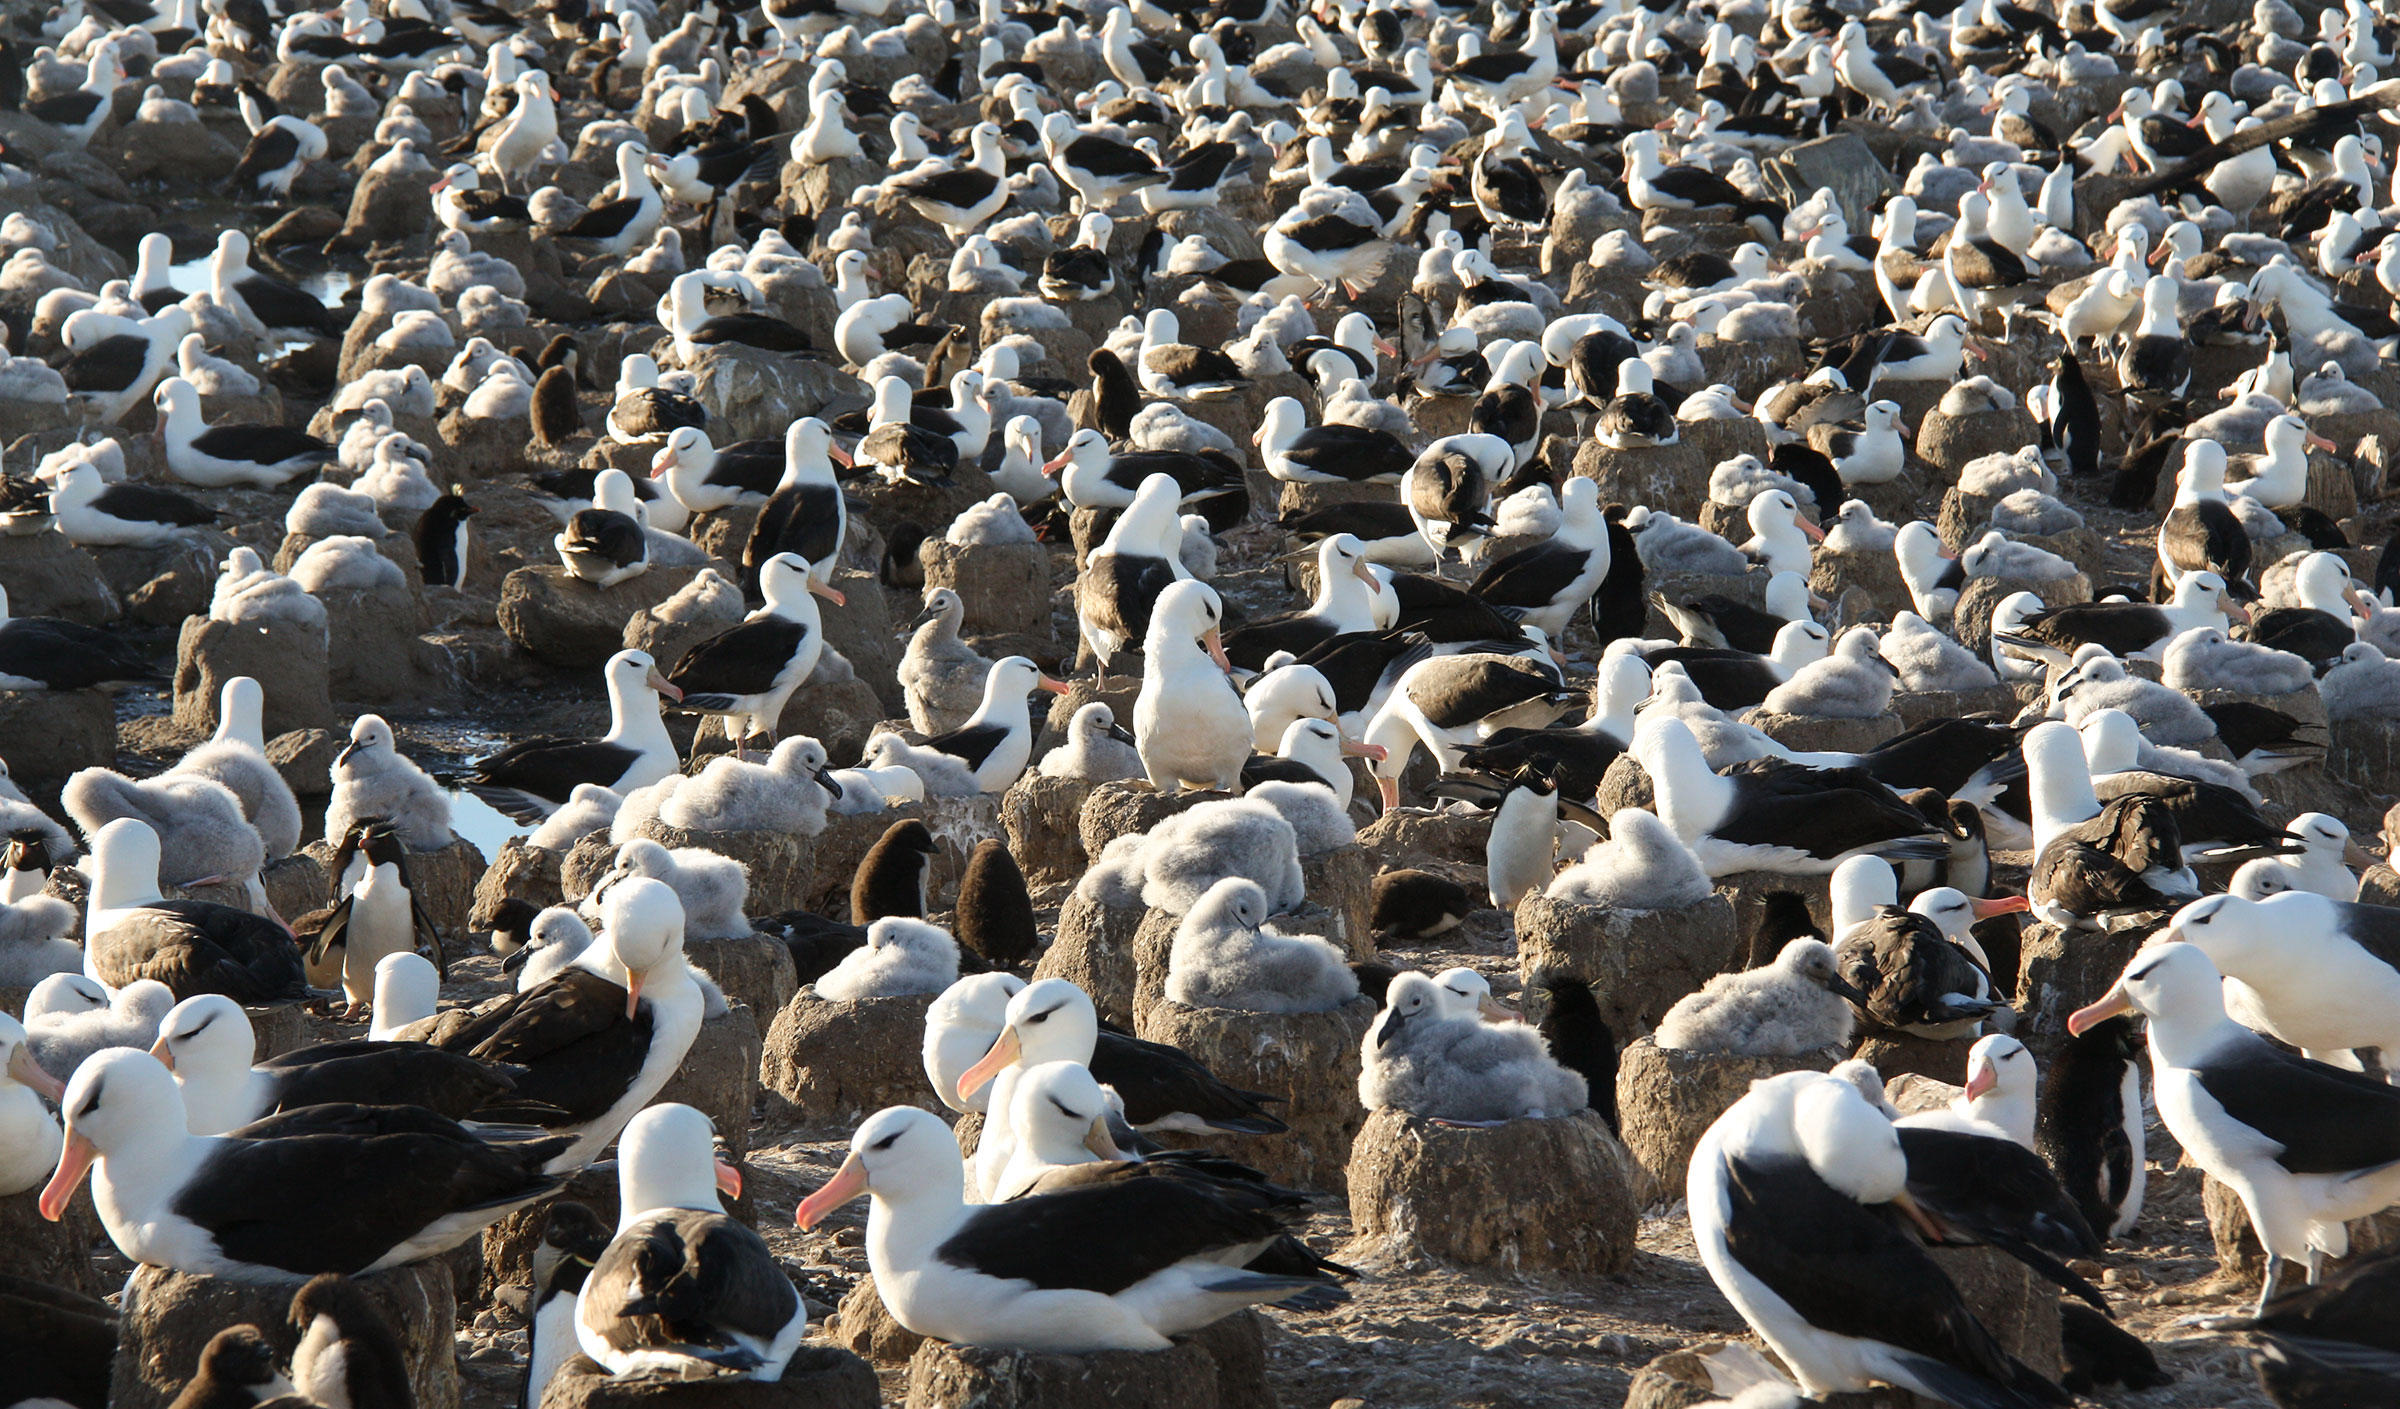 Black-browed Albatross colony in the Falkland Islands with Southern Rockhopper Penguins scattered throughout. Julie McInnes